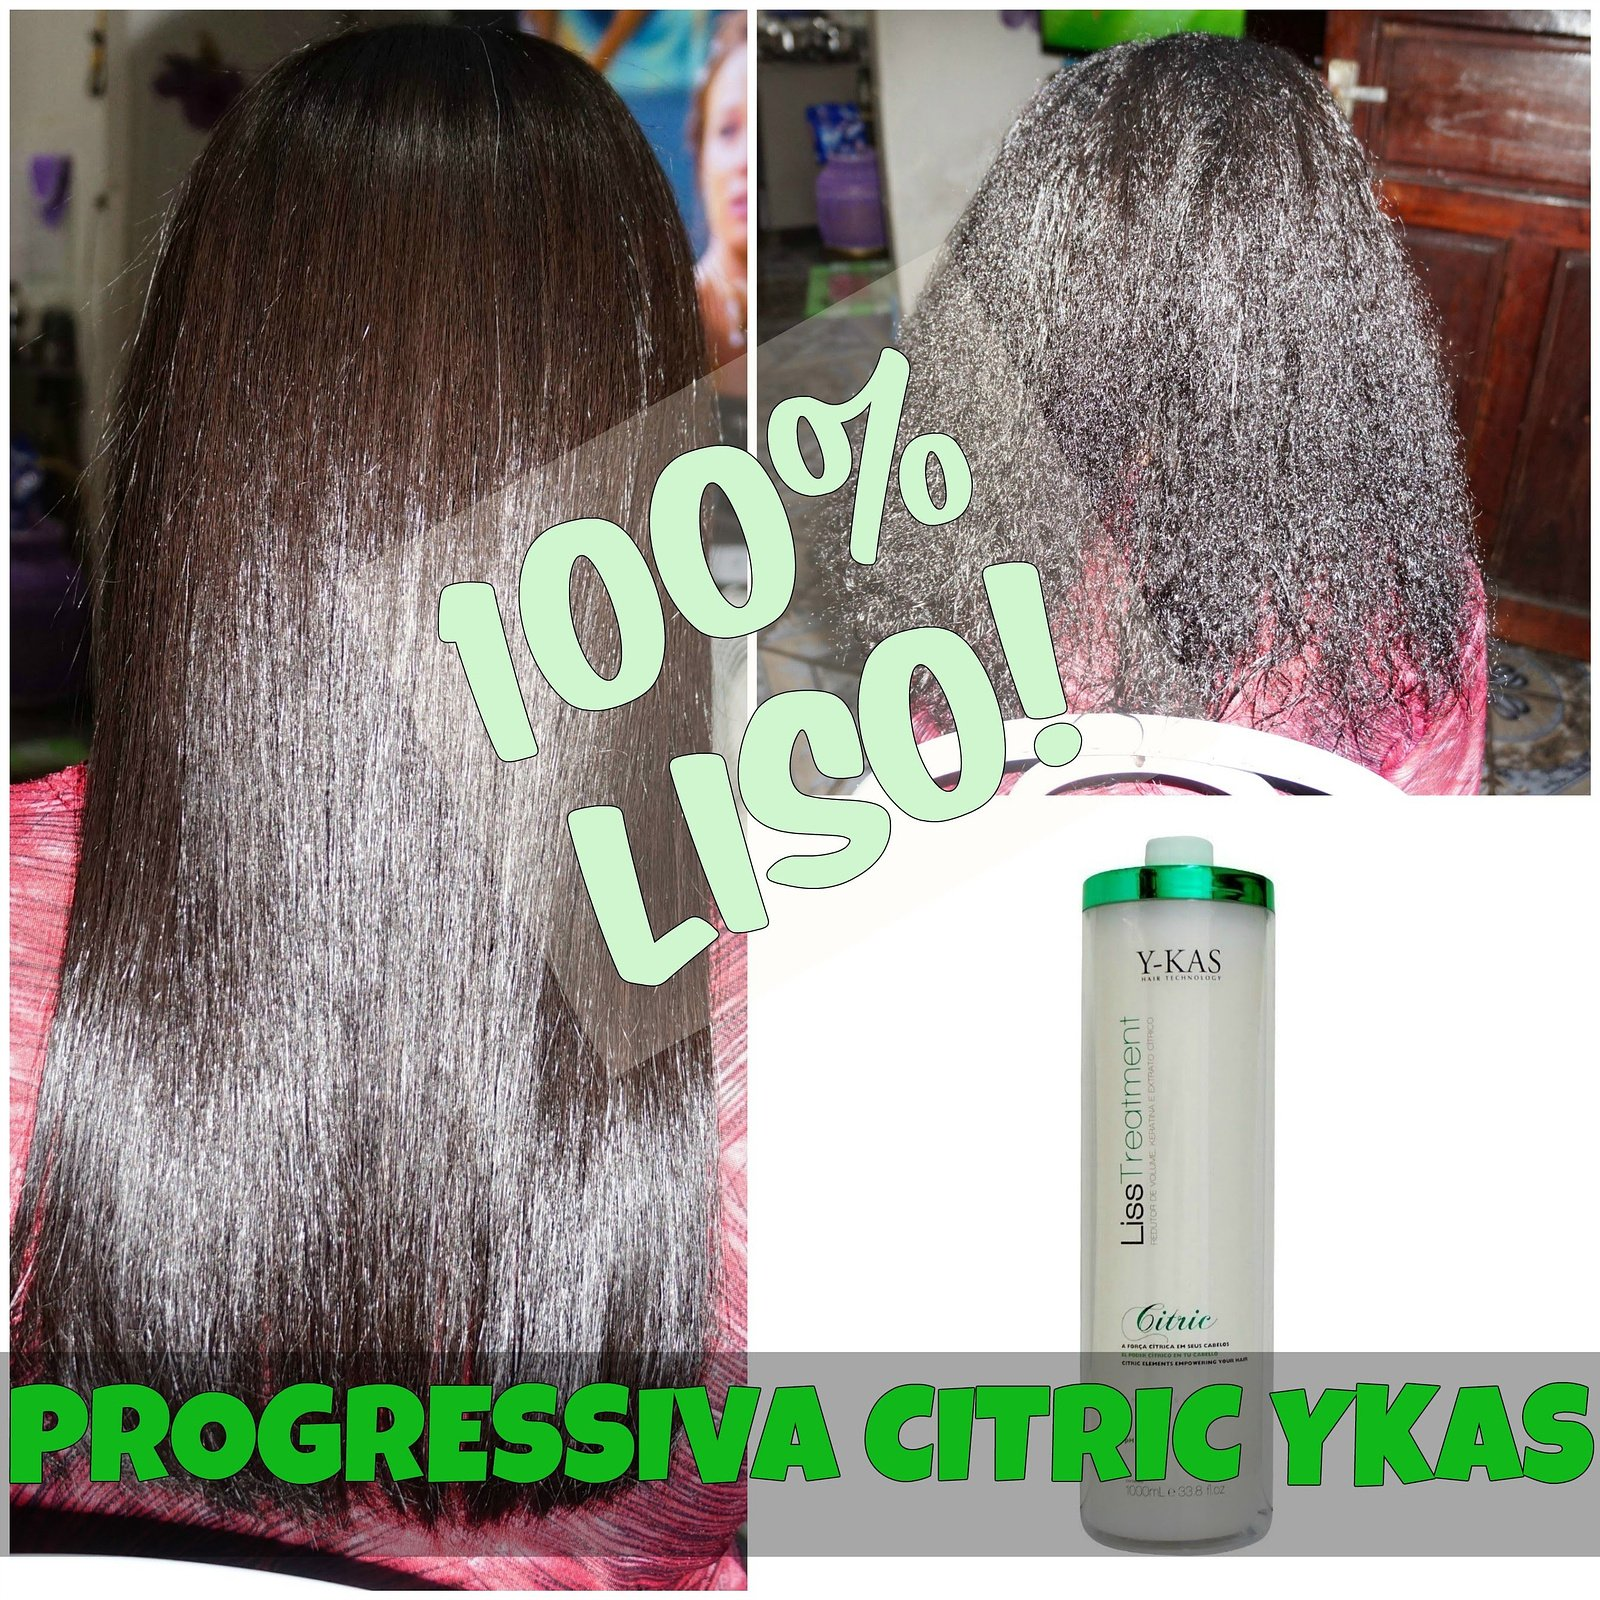 Y-Kas Citric Liss Treatmet Brazilian Keratin Hair Straightening Smoothing System Progressive Brush 1L by Y-KAS (Image #1)